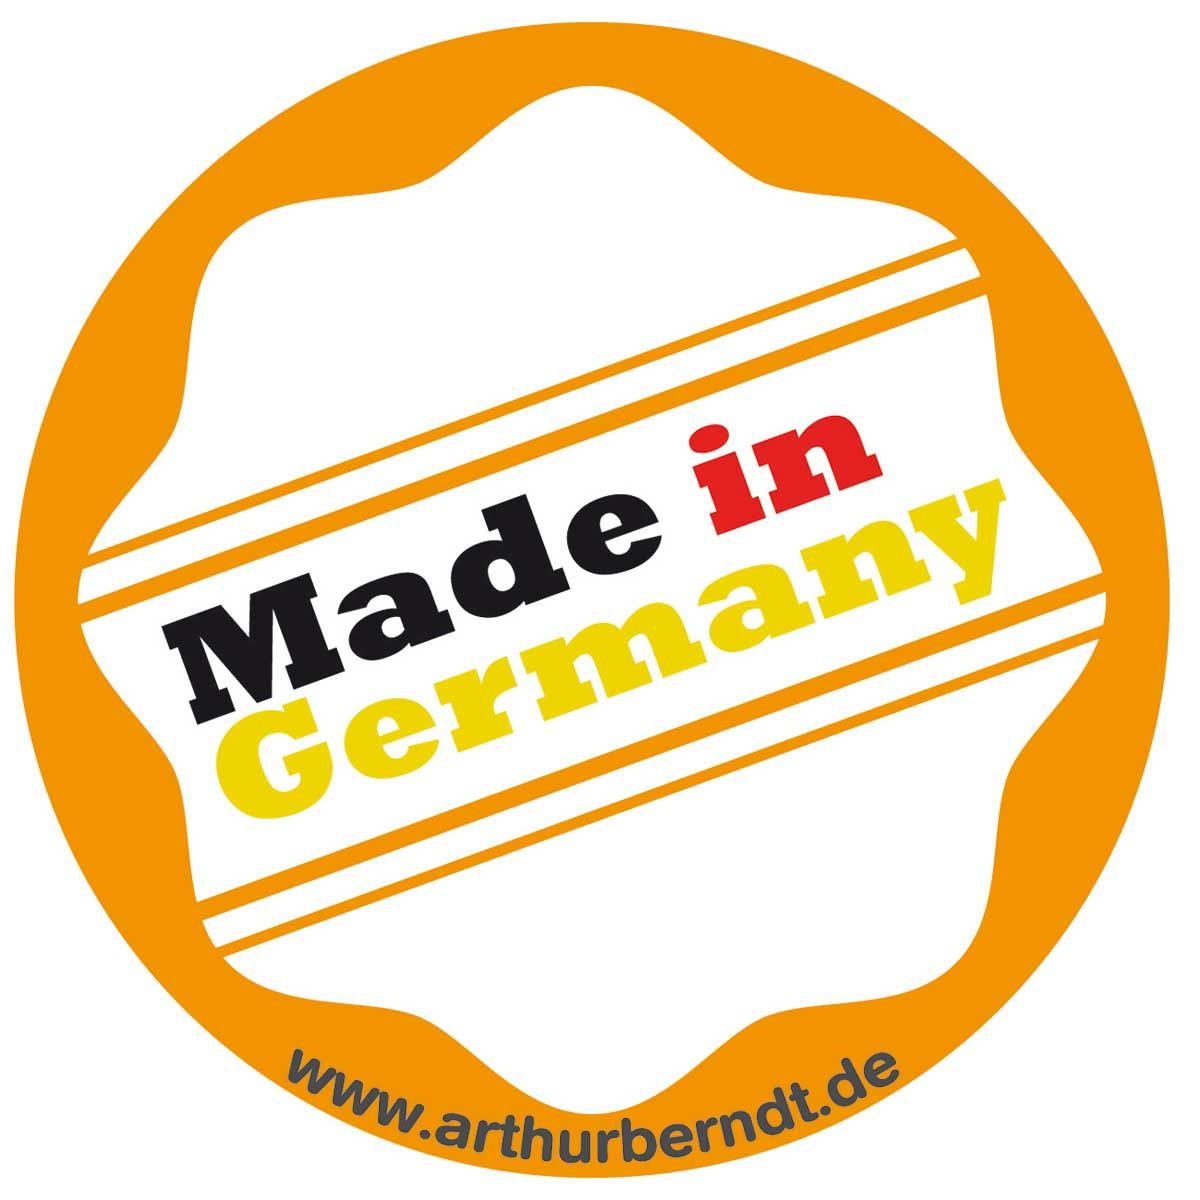 Arthur Berndt - Made in Germany